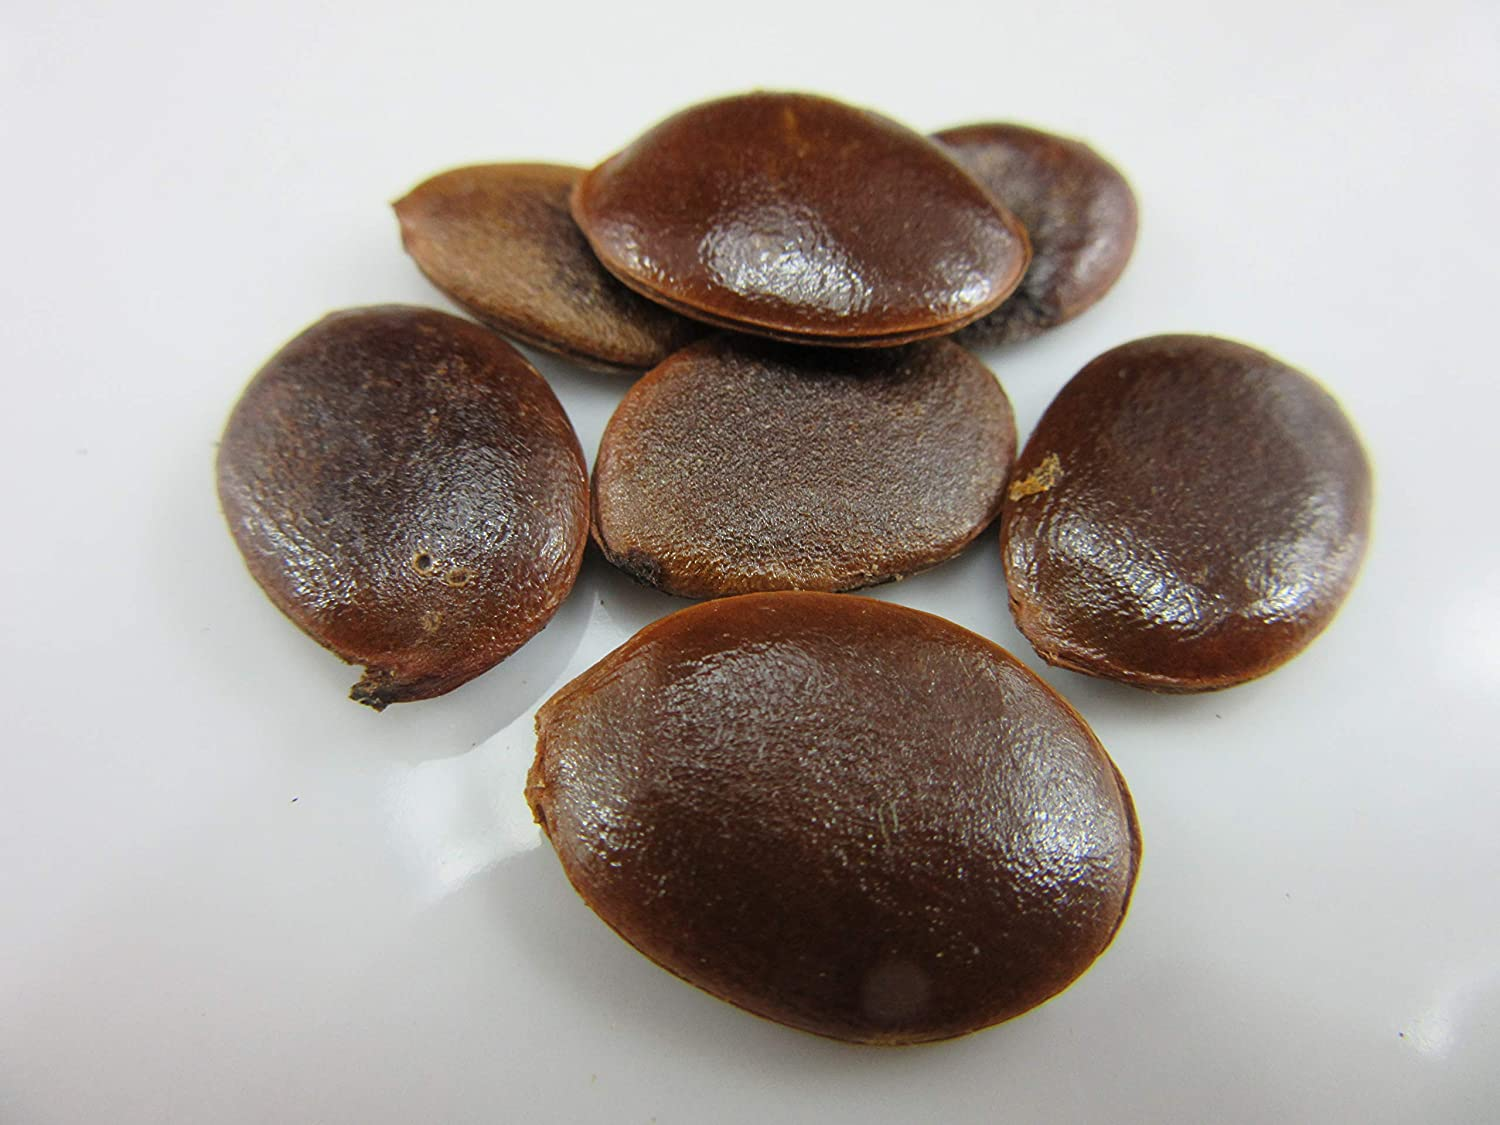 American Persimmon (Diospyros virginiana) Seeds by Robsrareandgiantseeds UPC0764425785866 Non-GMO,Organic,1010-A Package of 4 Seeds